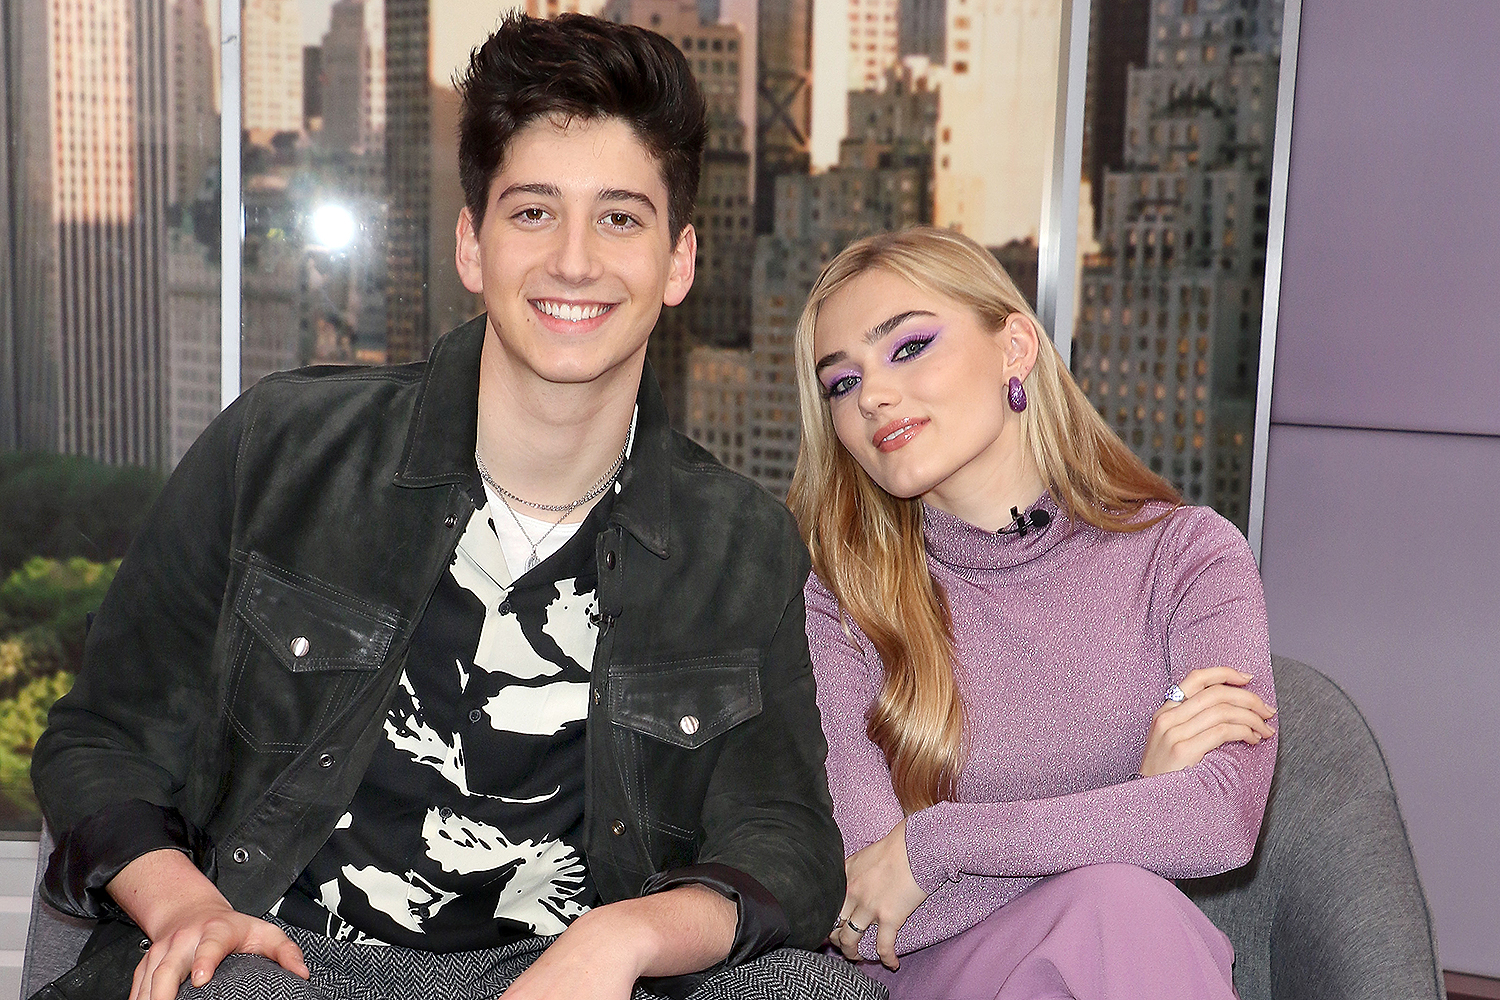 Milo Manheim and Meg Donnelly